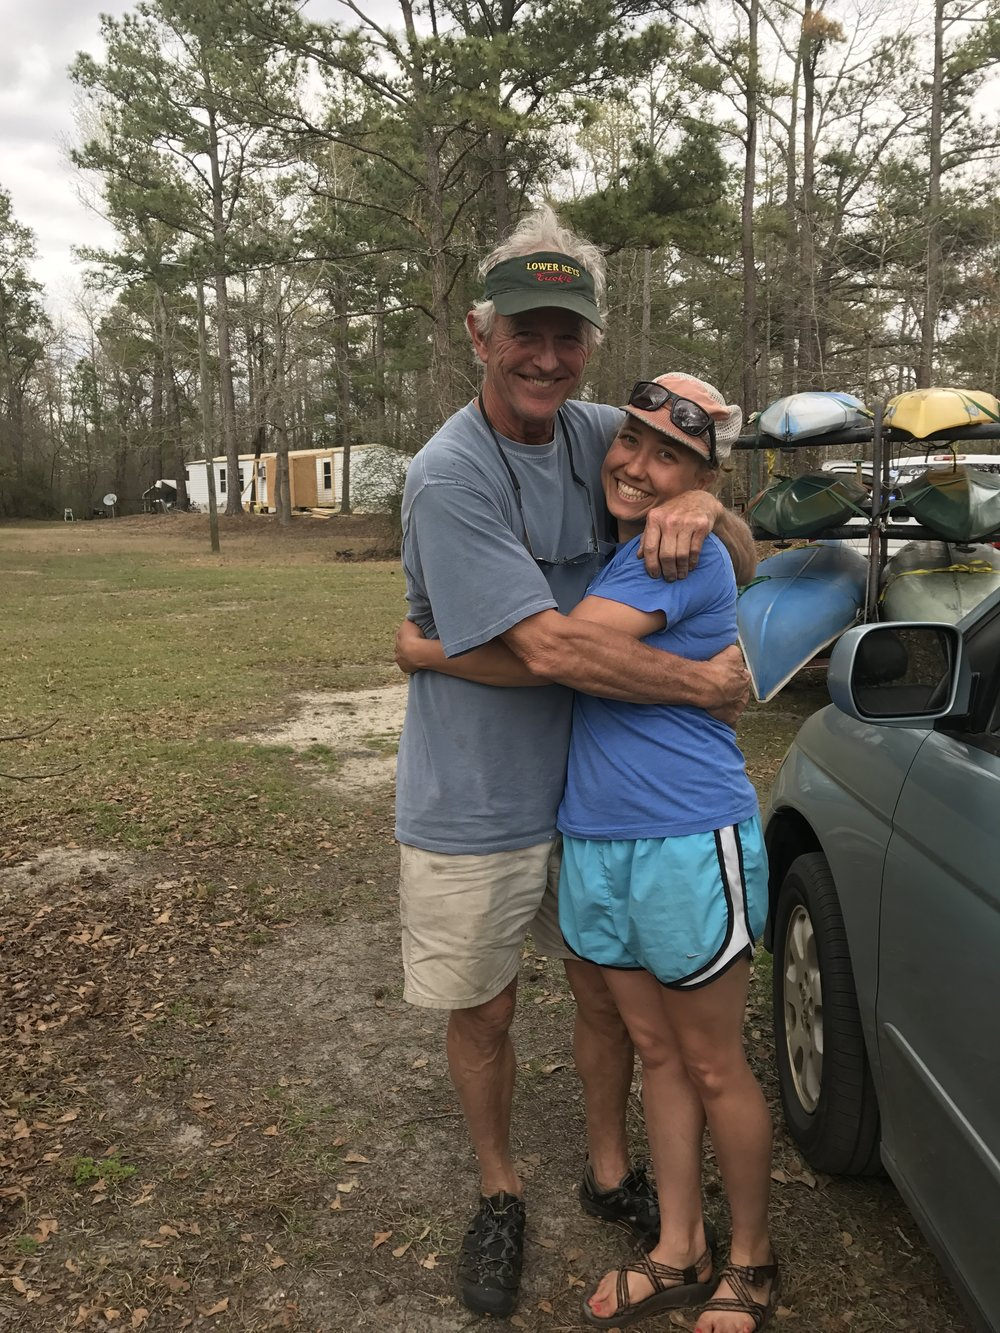 Me and CR no ready to say goodbye after two amazing days on the river and exploring the swamp.